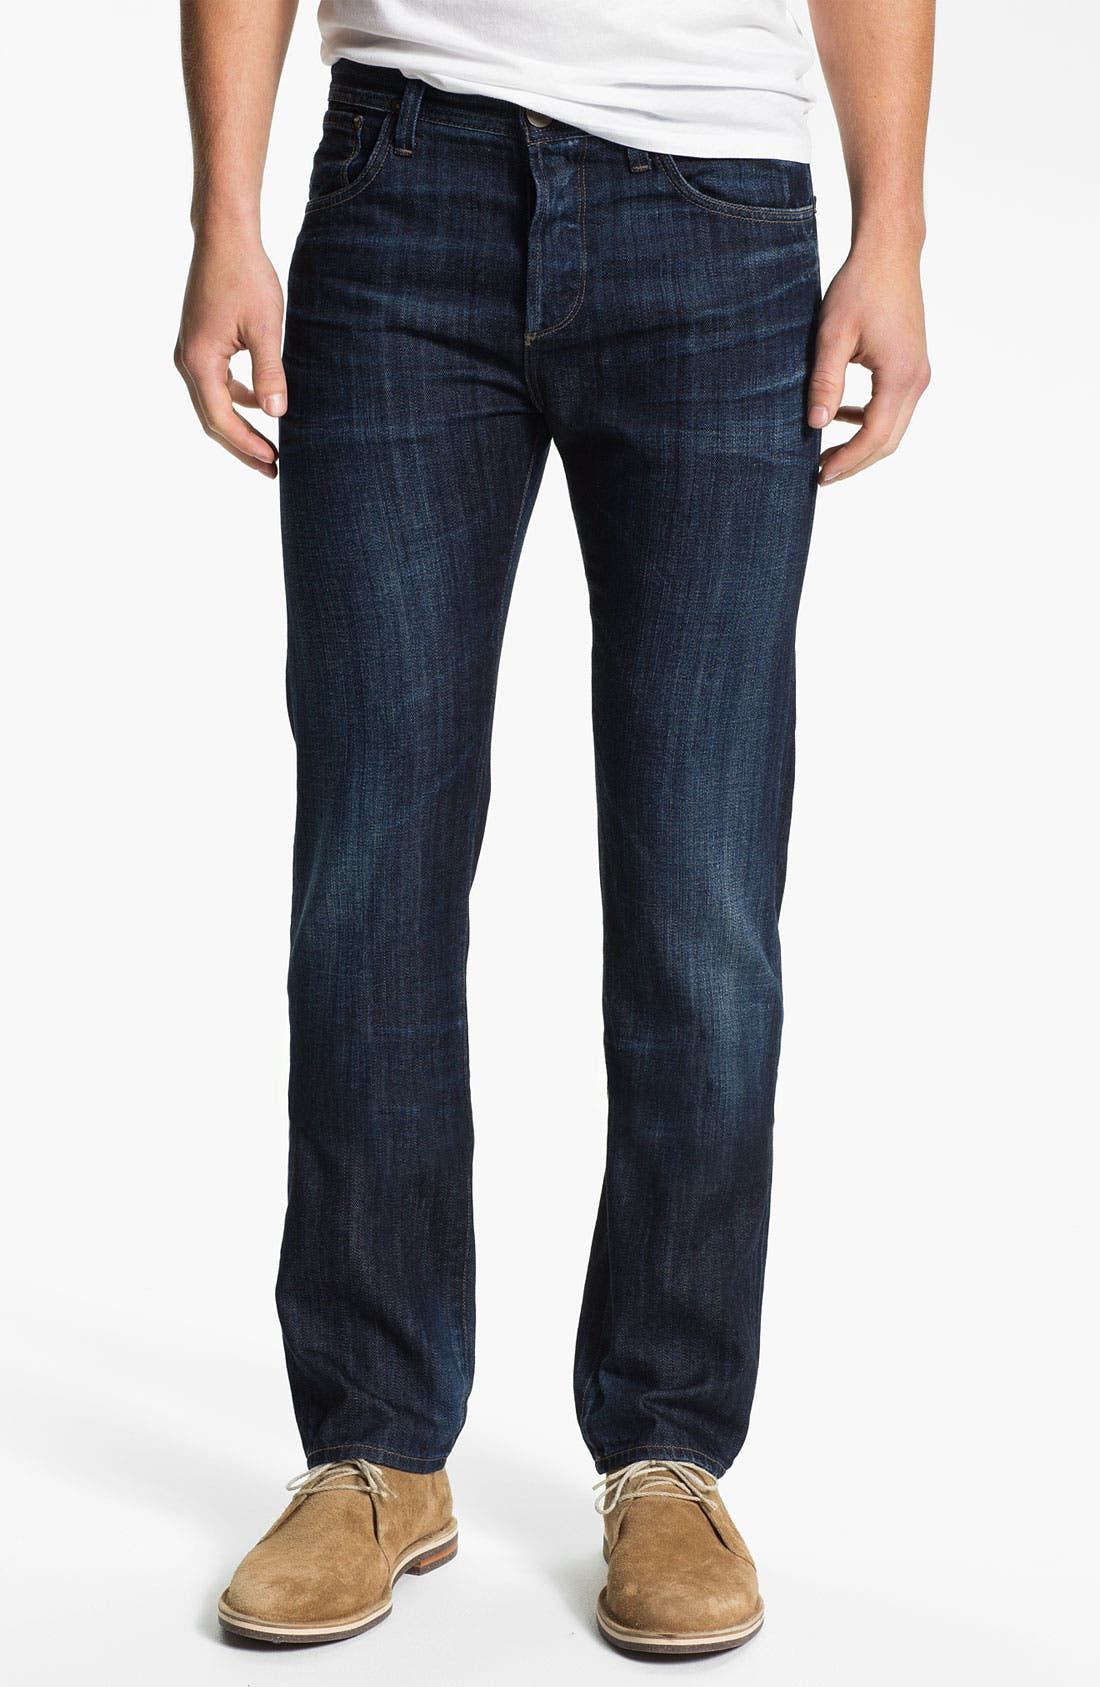 Alternate Image 1 Selected - Citizens of Humanity 'Core' Slim Straight Leg Jeans (Gleen)